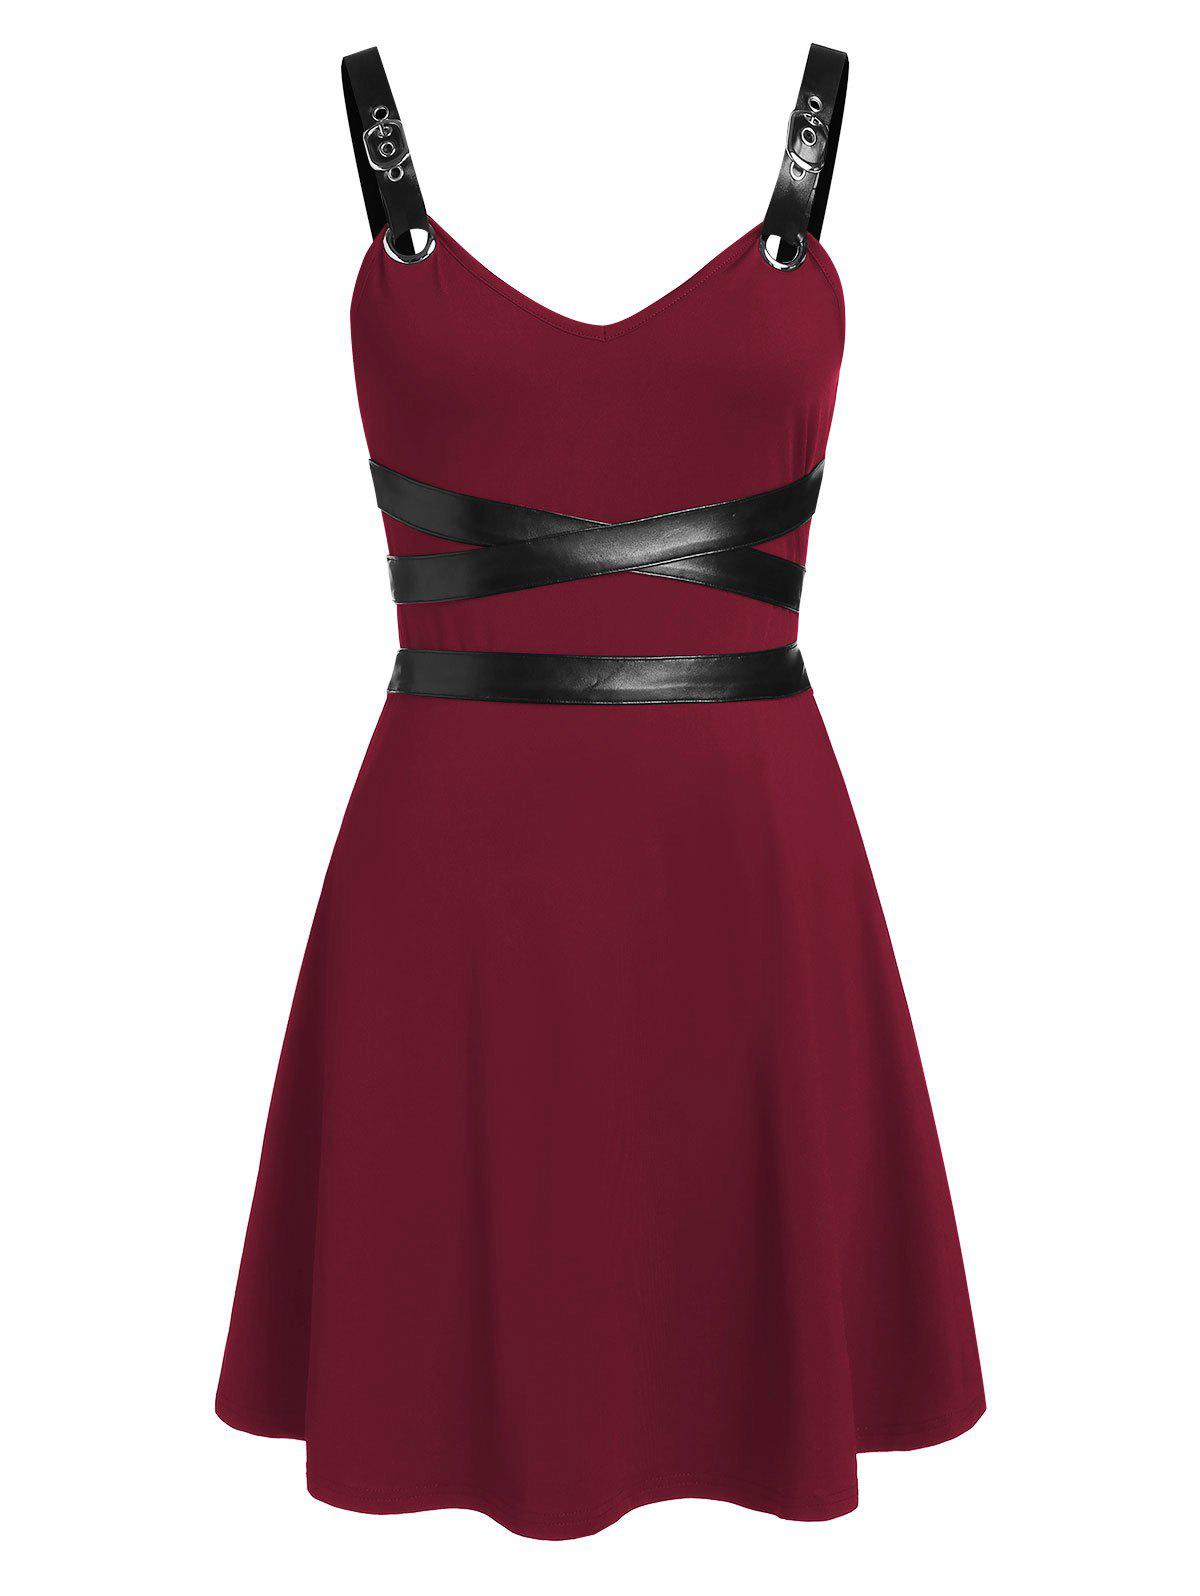 Sleeveless Faux Leather Insert Flare Dress - RED WINE XL